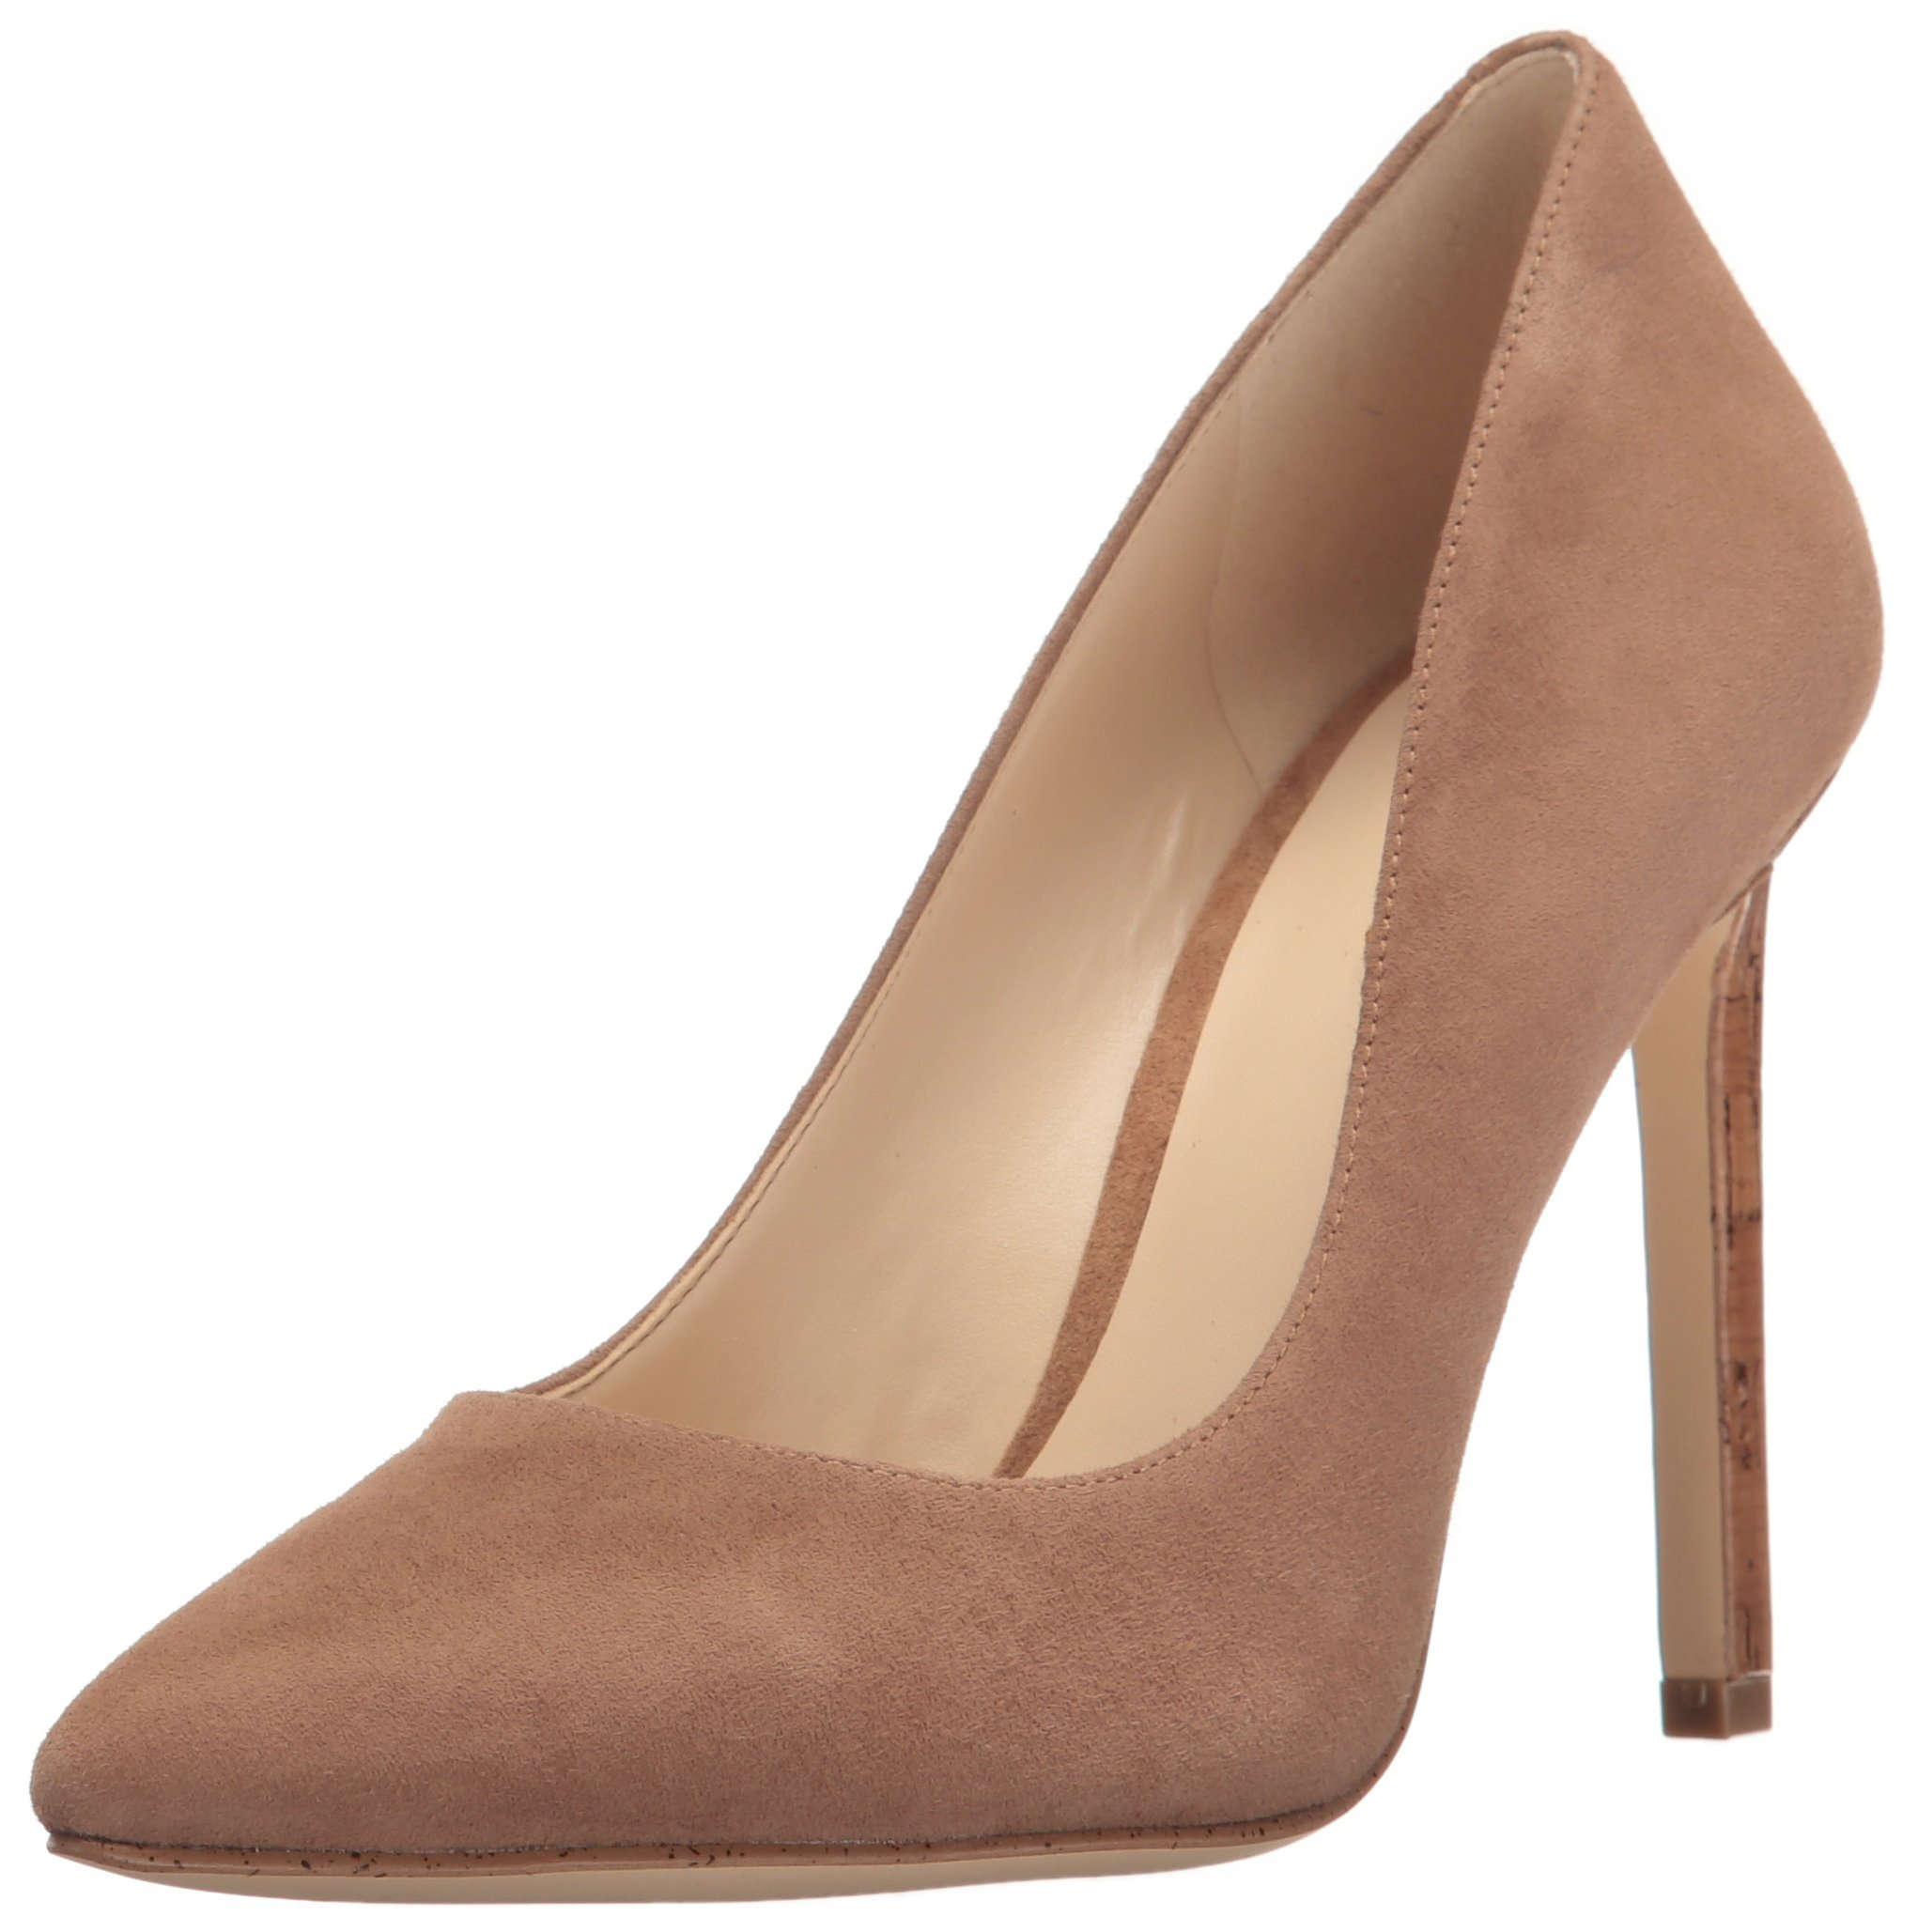 Nine West Women's Tatiana Suede Dress Pump, Dark Natural, 8 M US